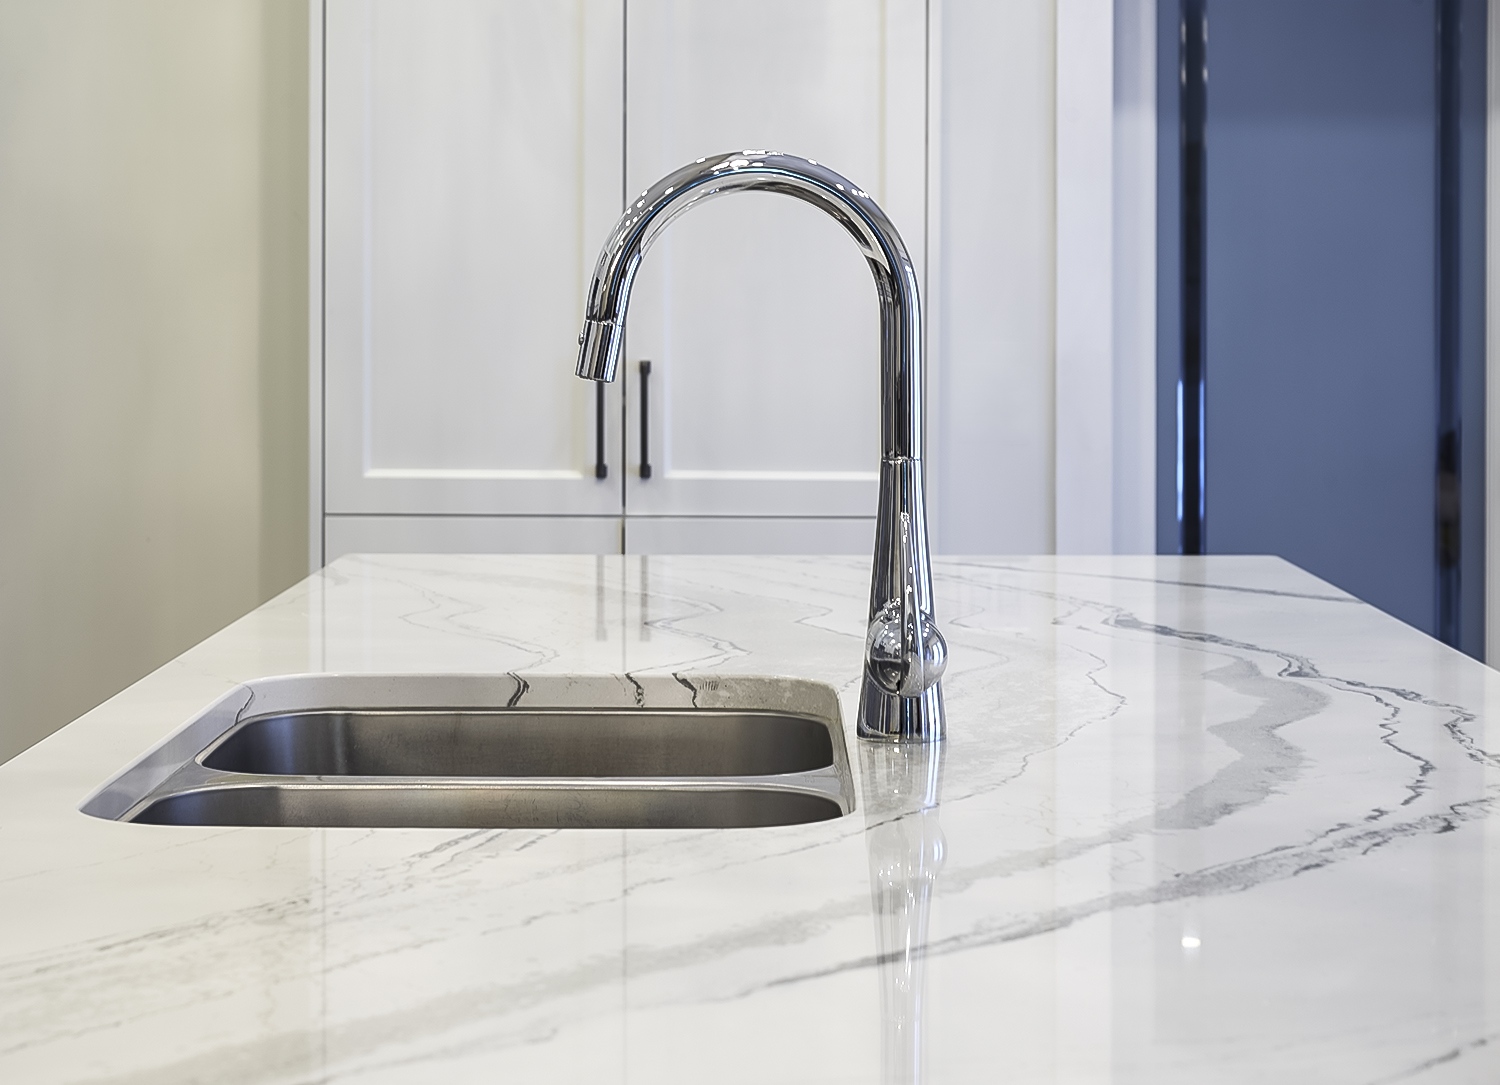 Island Cambria quartz and Grohe Faucet detail shot